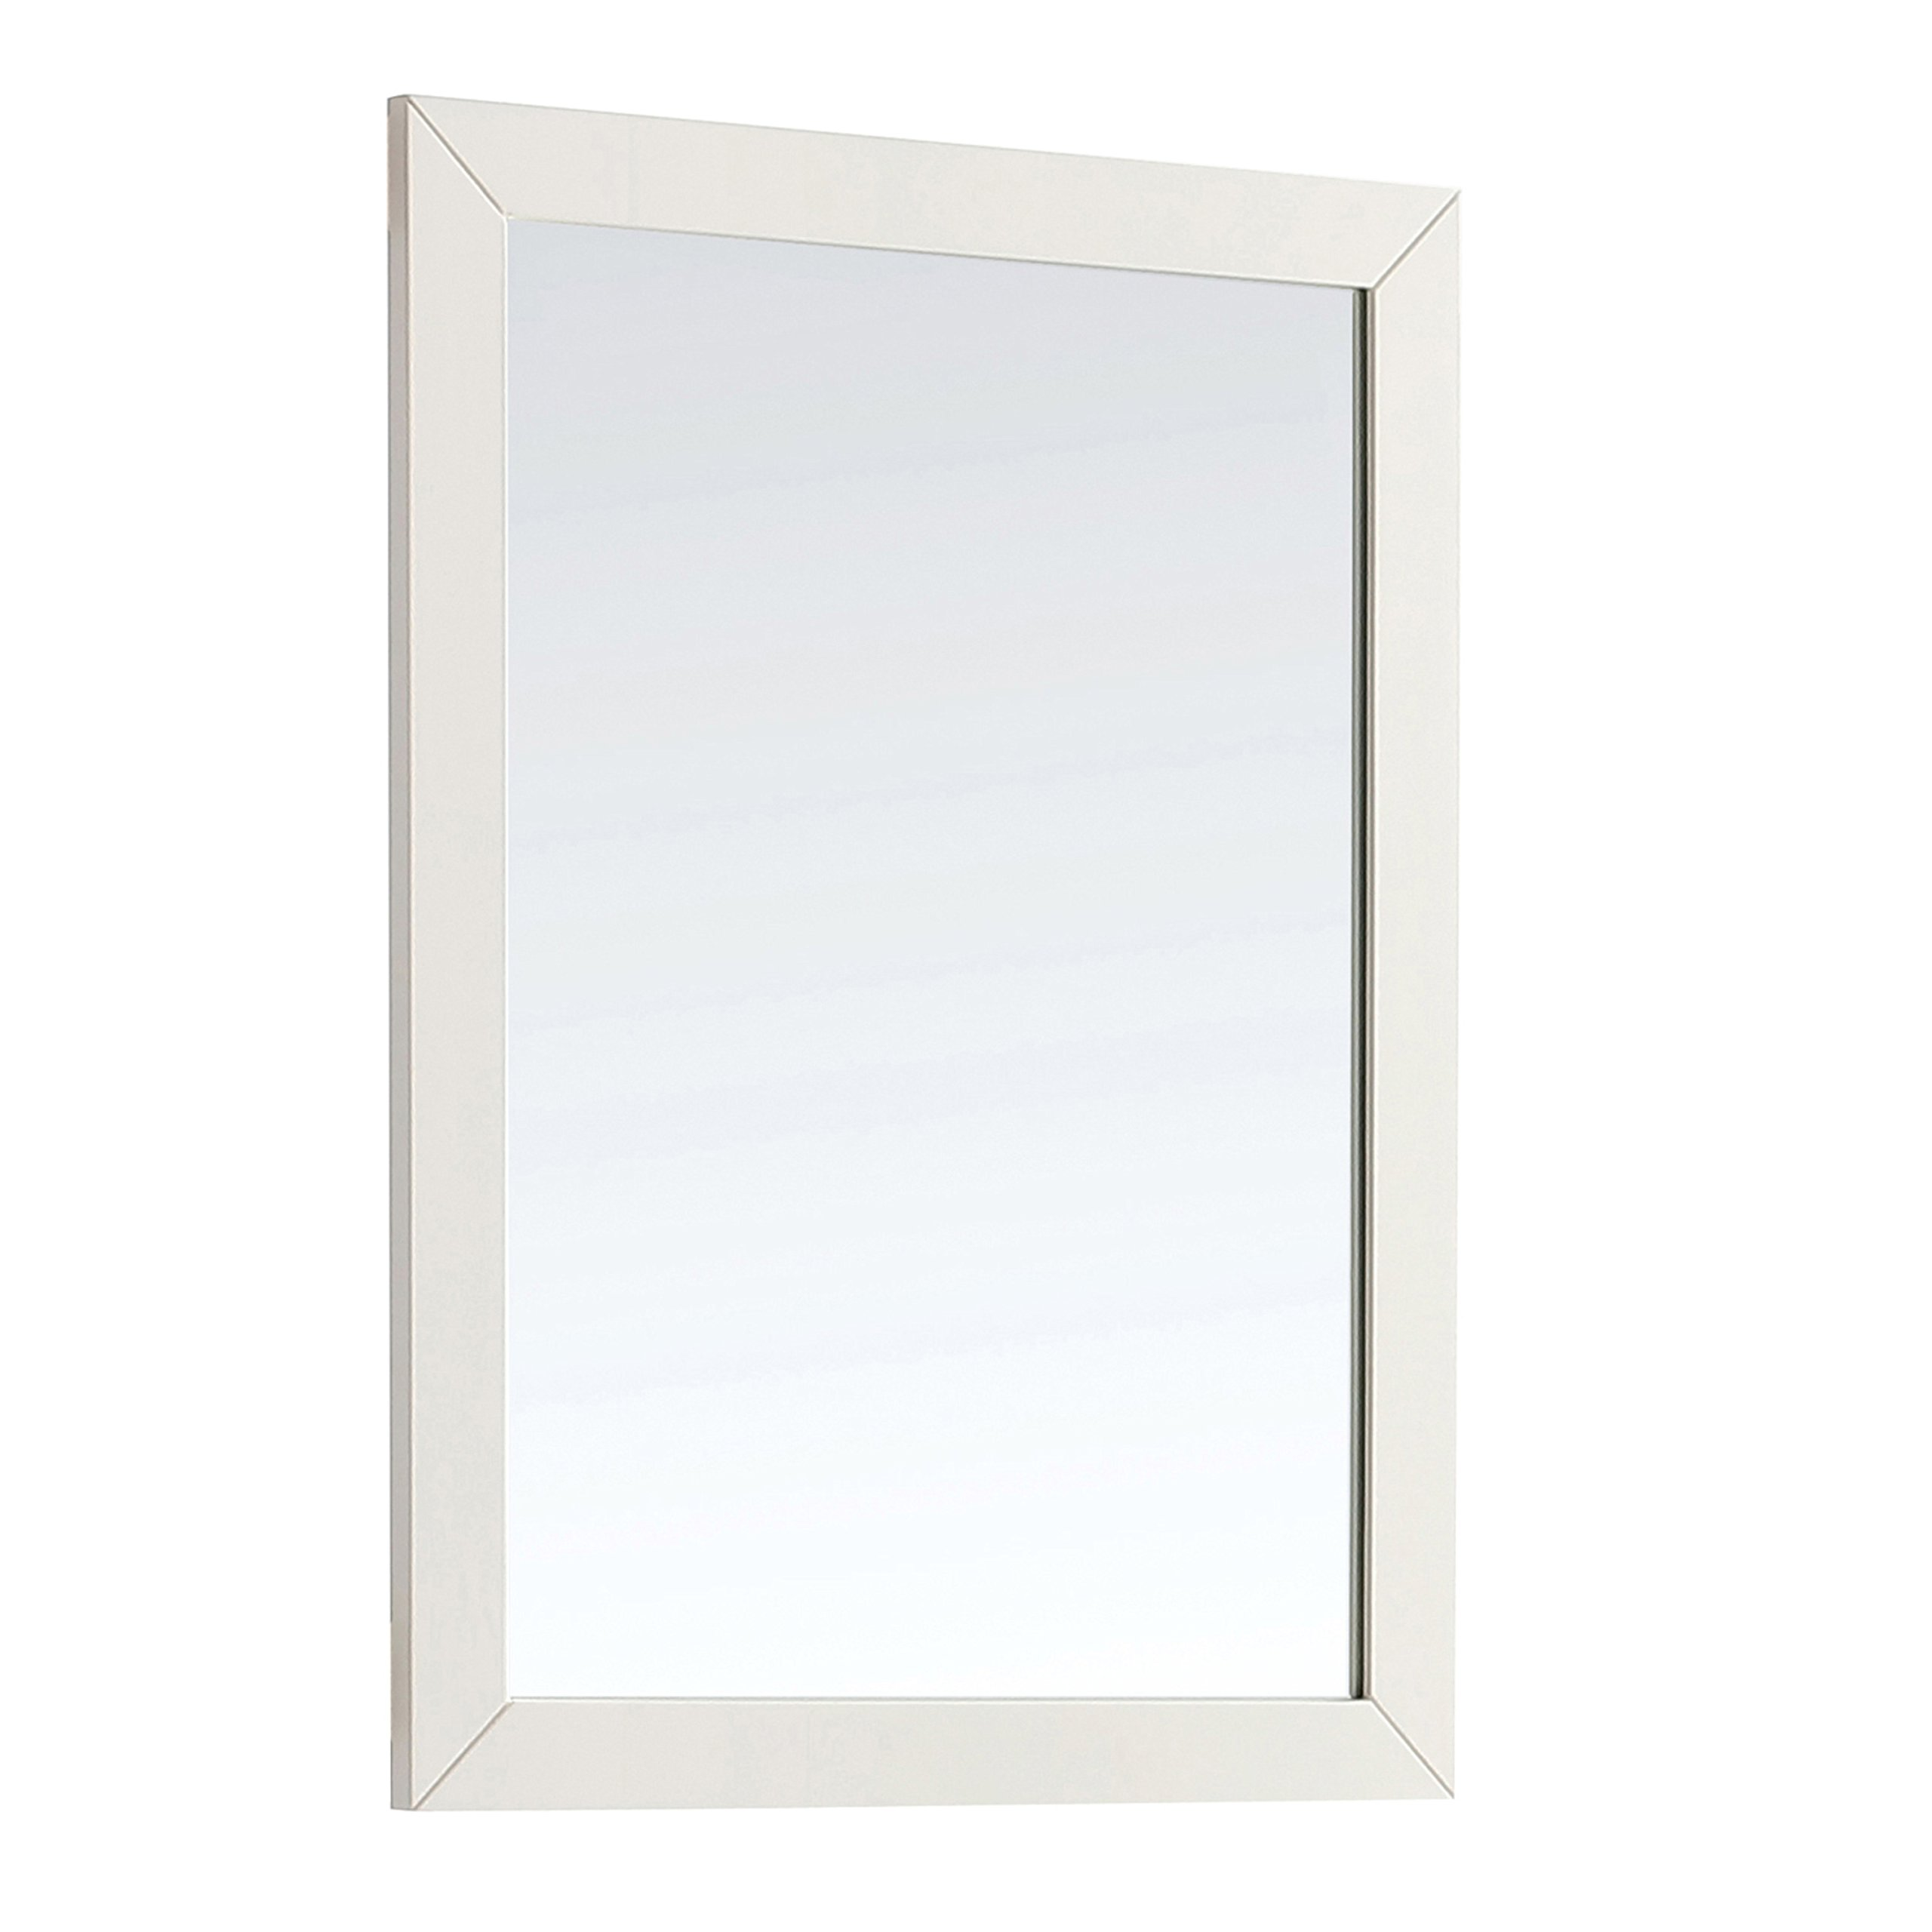 Simpli Home Paige 30'' x 34'' Large Bath Vanity Décor Mirror, Soft White